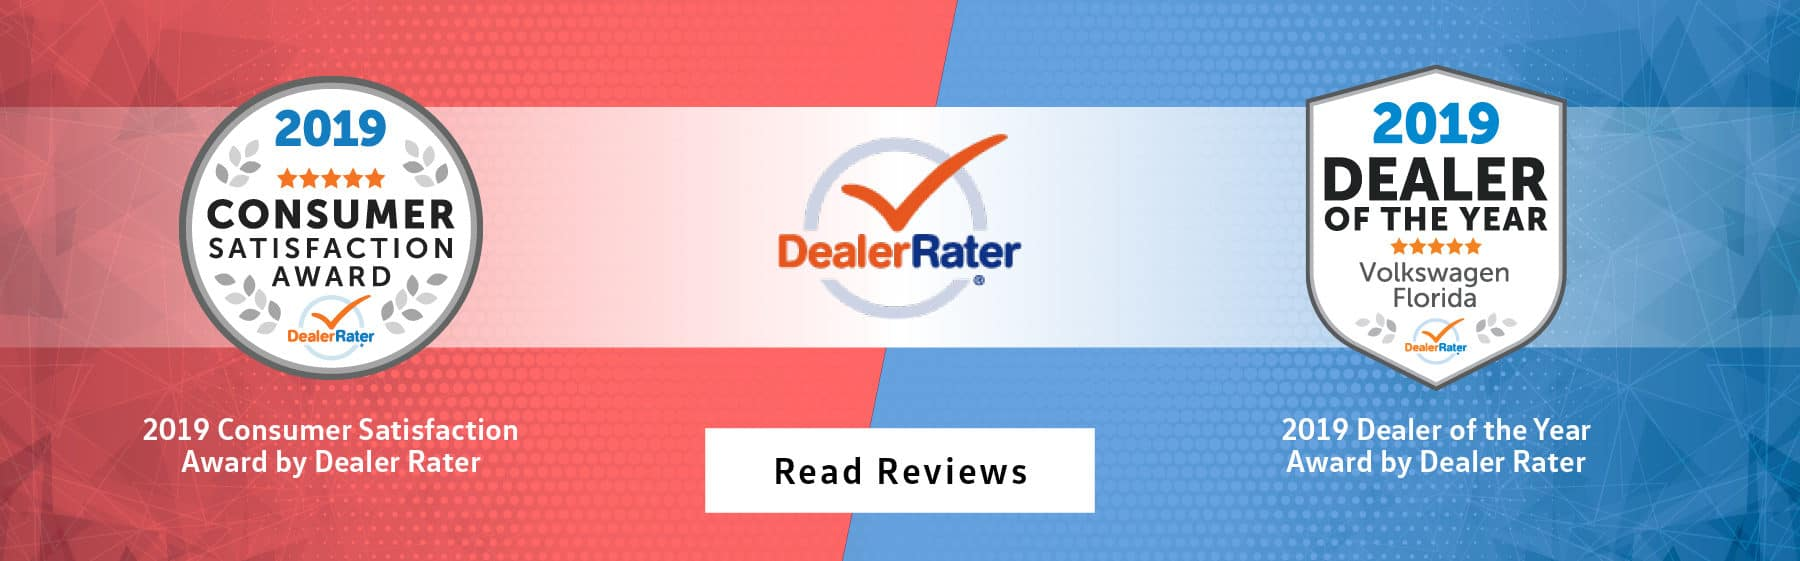 Awarded 2019 consumer satisfaction award and 2019 dealer of the year award by dealer rater. Read our reviews.